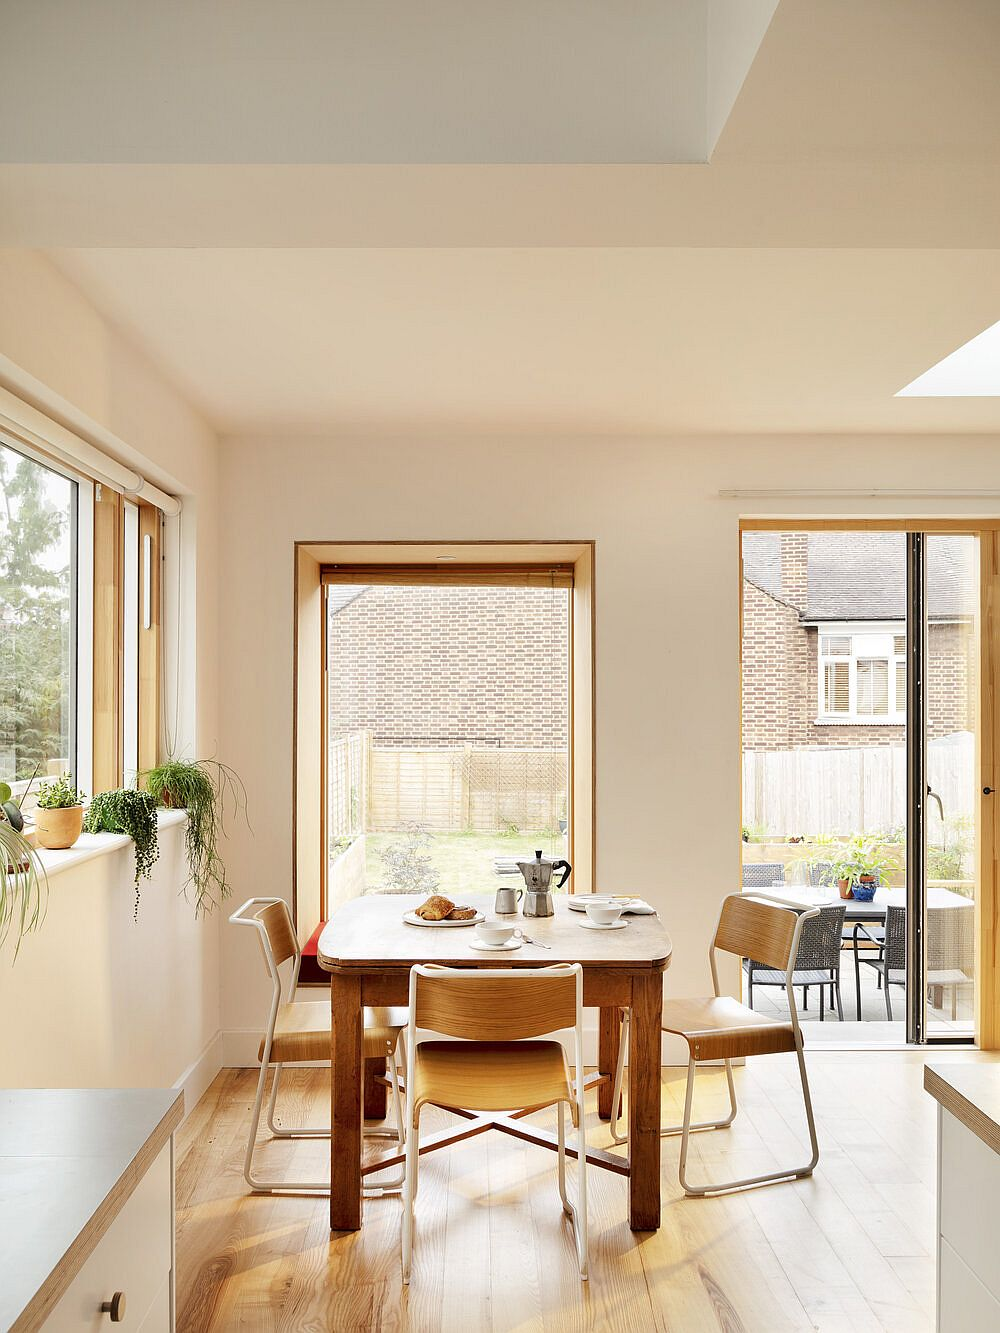 Custom windows and large glass doors bring ample natural light into the dining area and kitchen